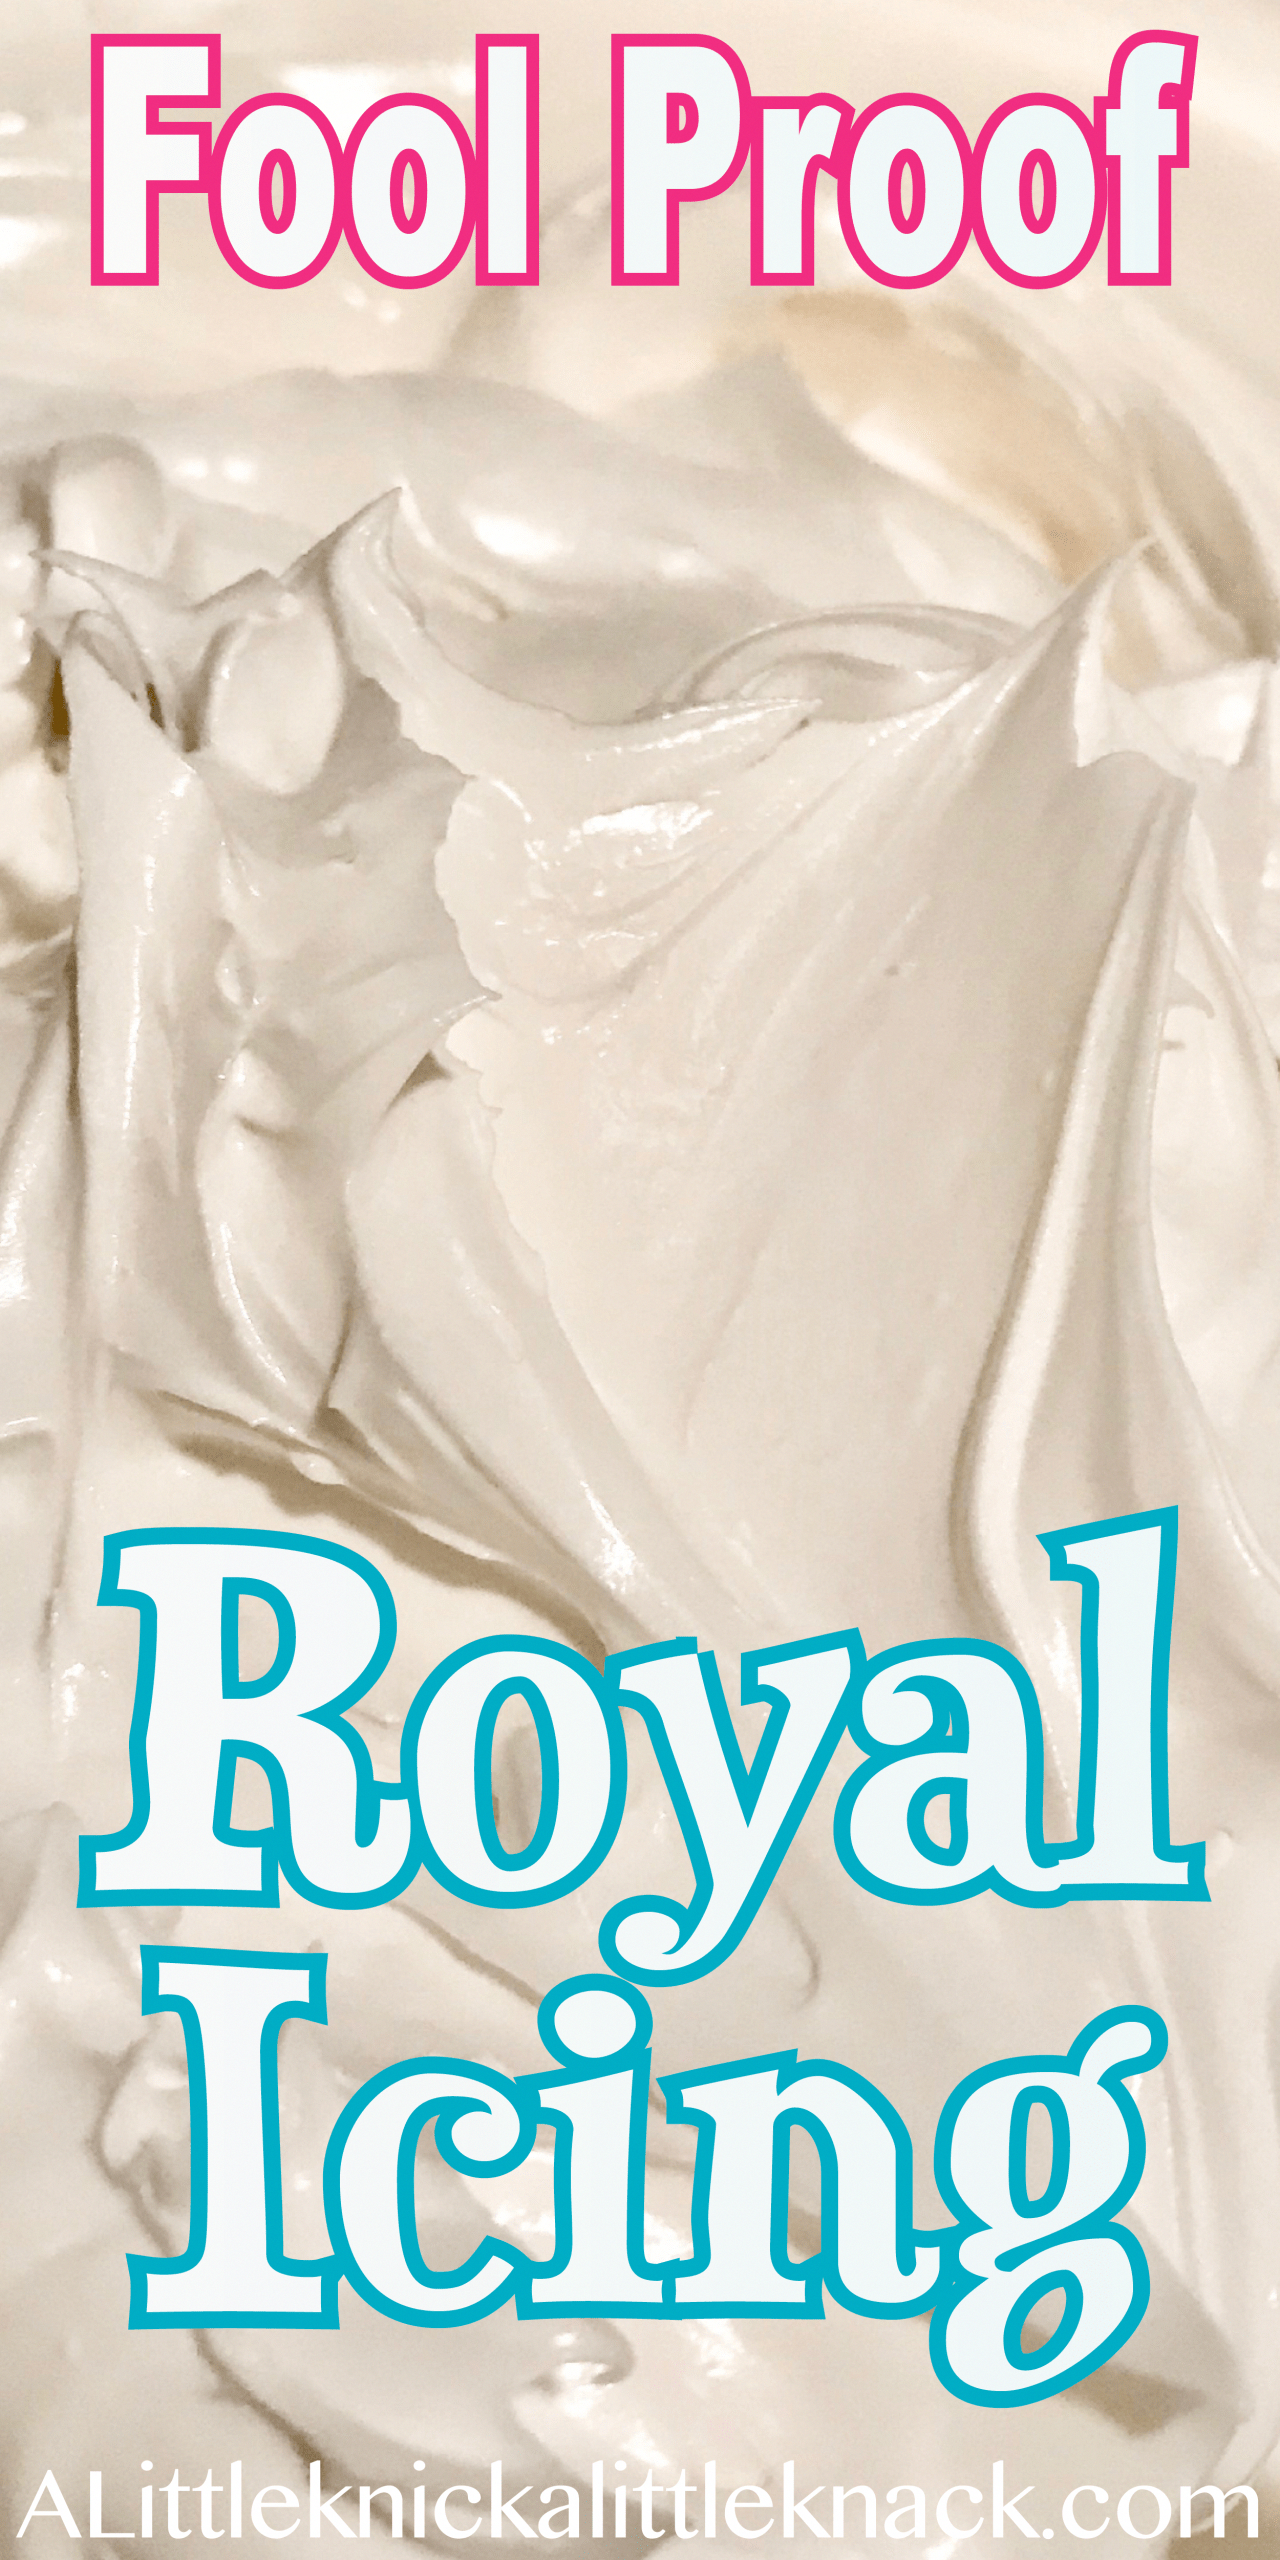 The key to a DELICIOUS sugar cookie is all in the royal icing. This fool proof royal icing recipe is super easy and tasty! The key to a DELICIOUS sugar cookie is all in the royal icing. This fool proof royal icing recipe is super easy and tasty!